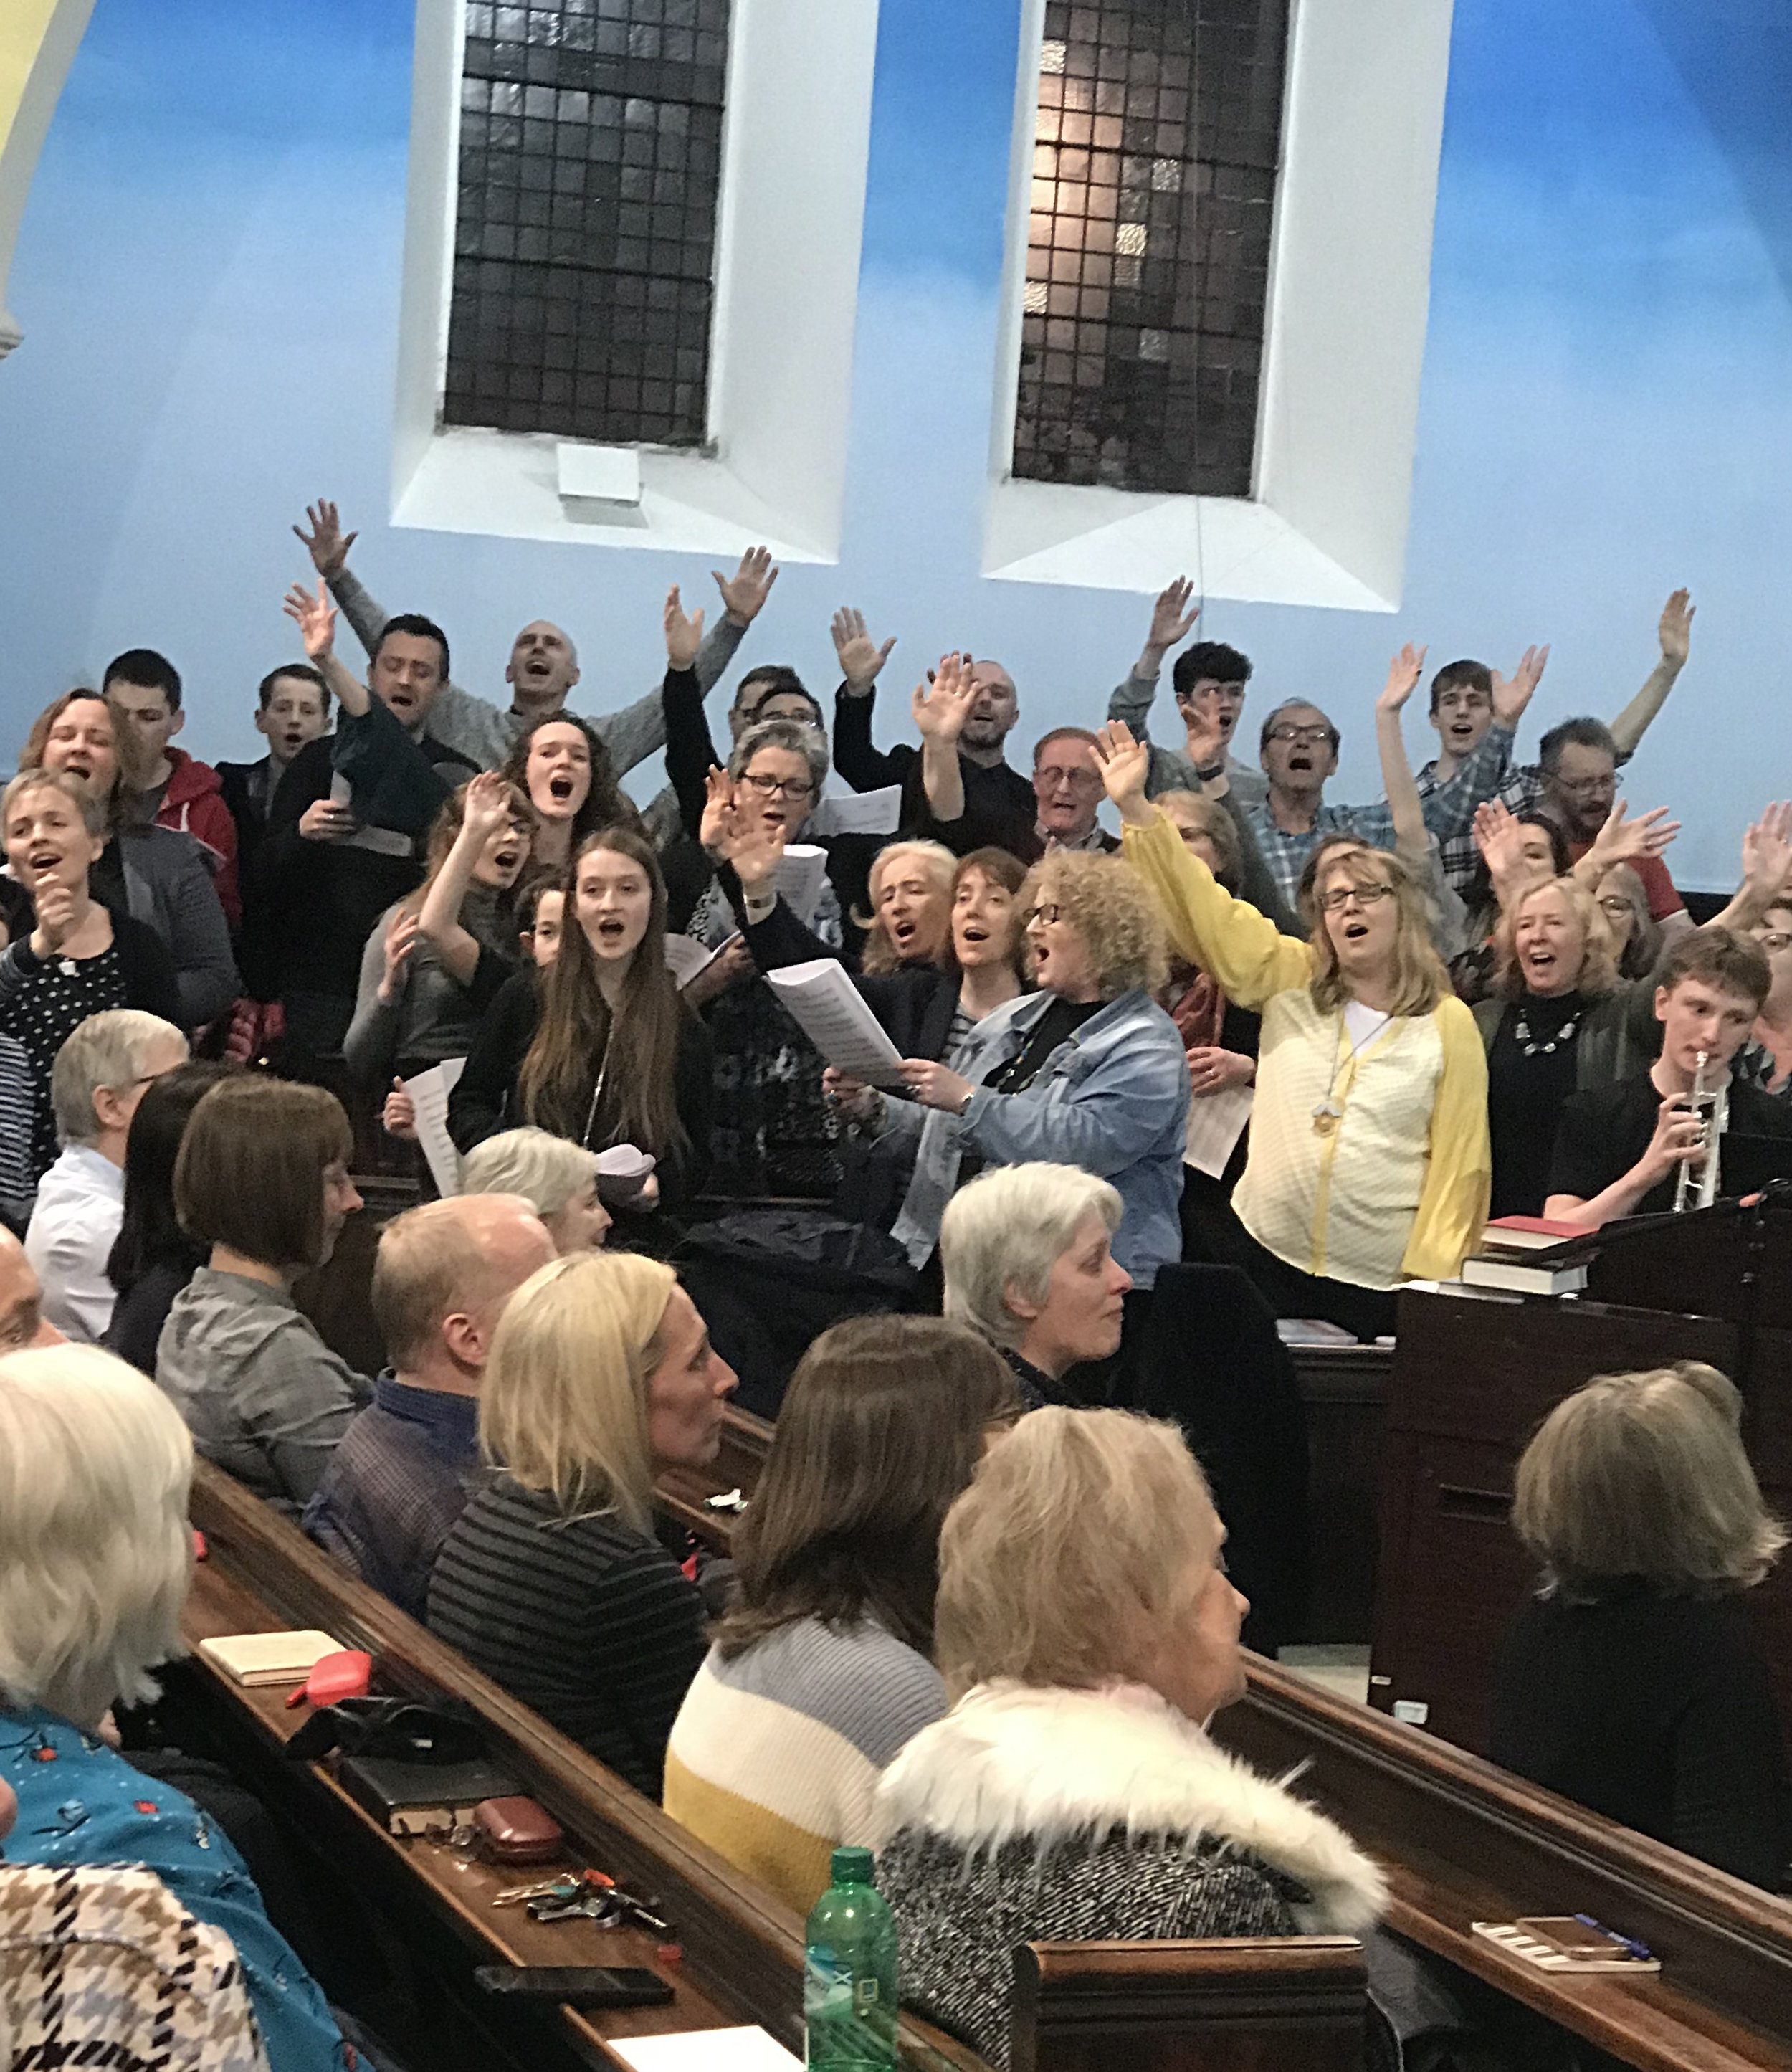 Some of the united choir